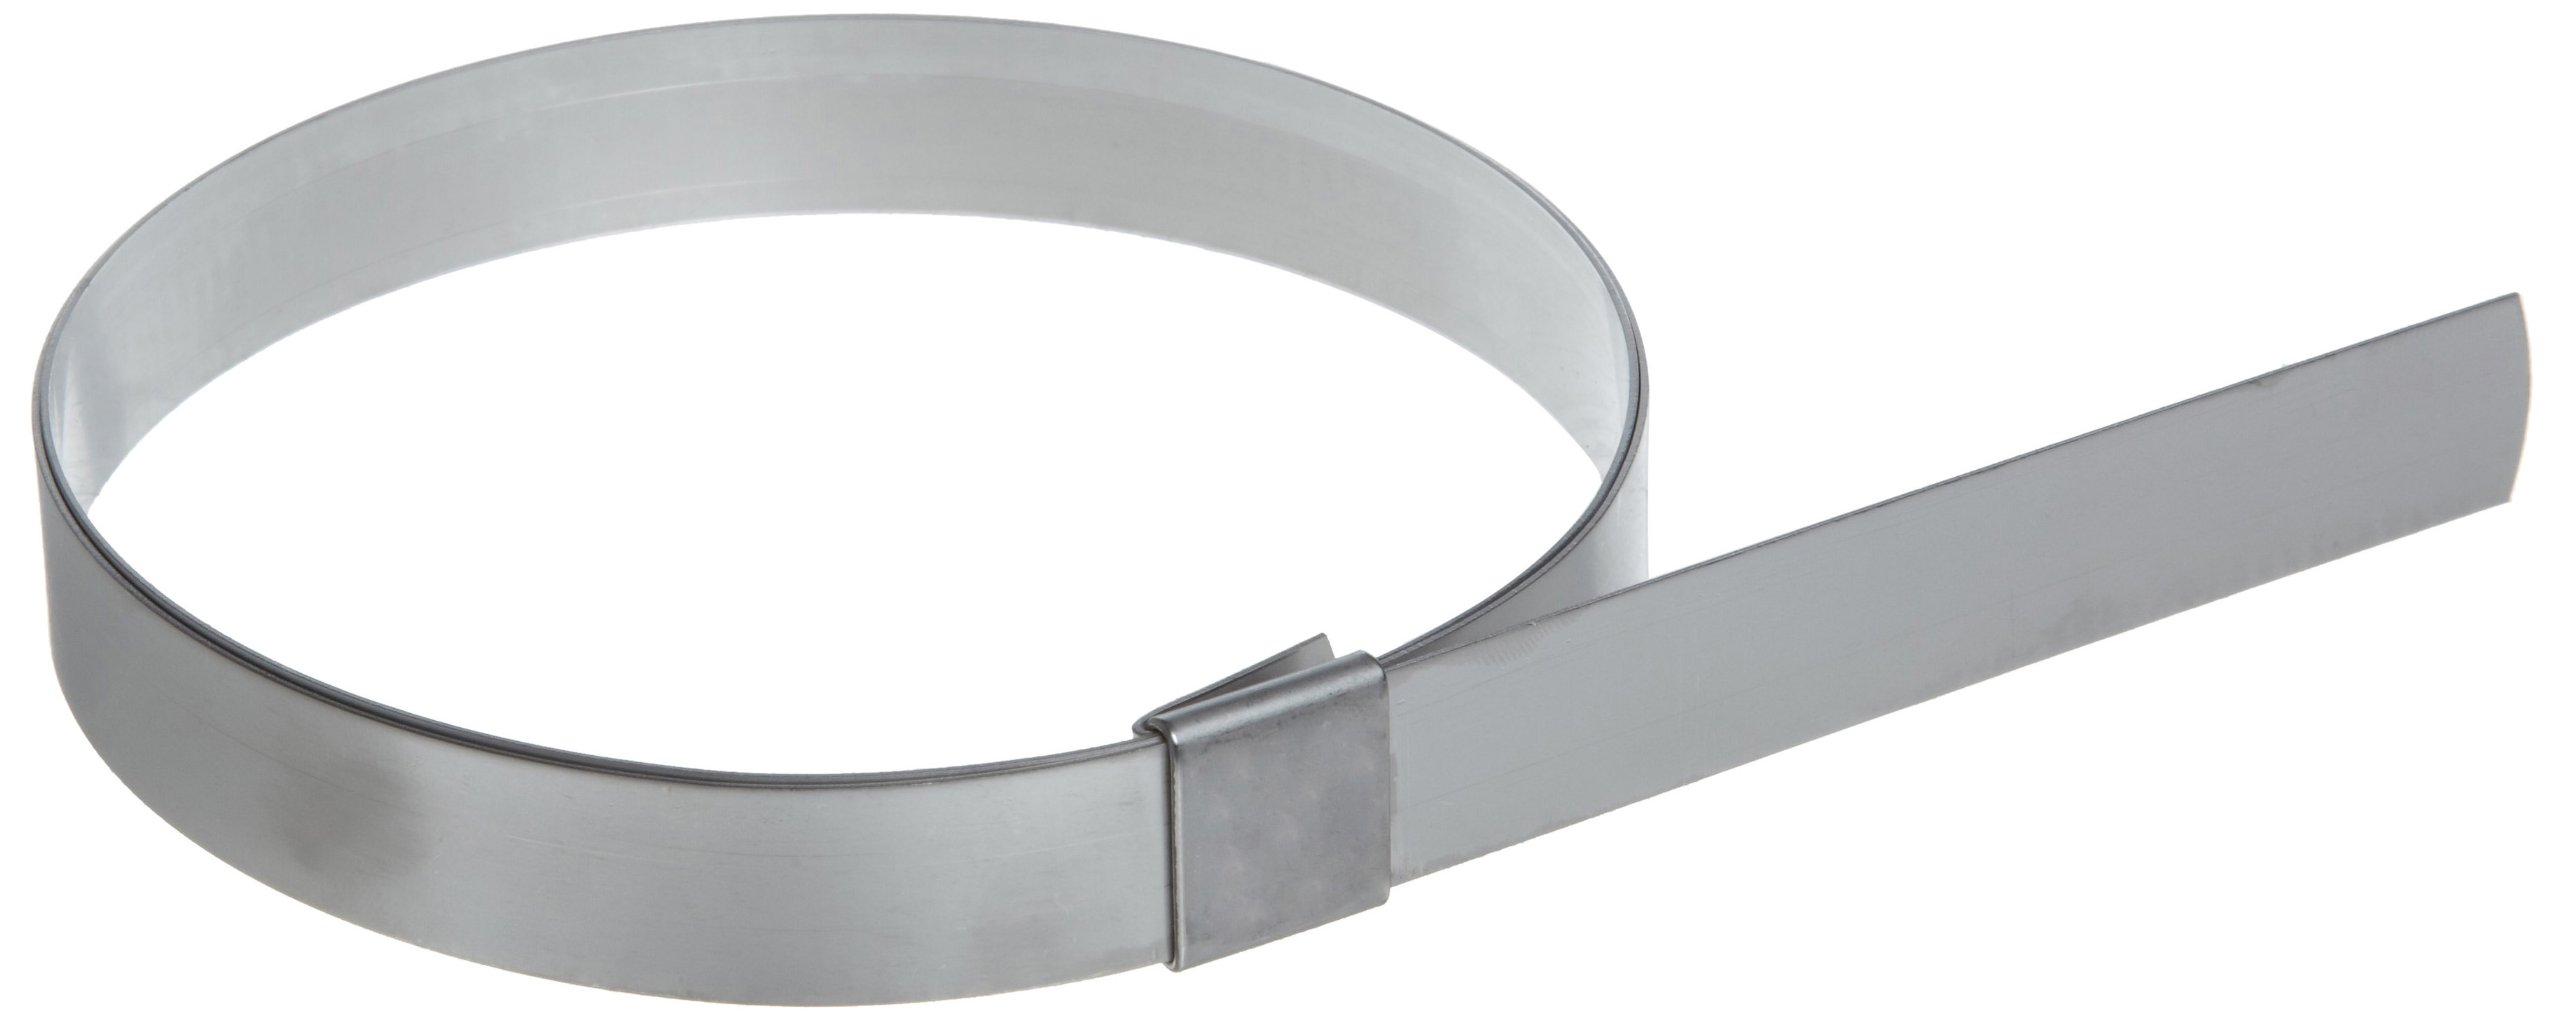 BAND-IT CP12S9 5/8'' Wide x 0.025'' Thick 3'' Diameter, 201 Stainless Steel Center Punch Clamp (50 Per Box)